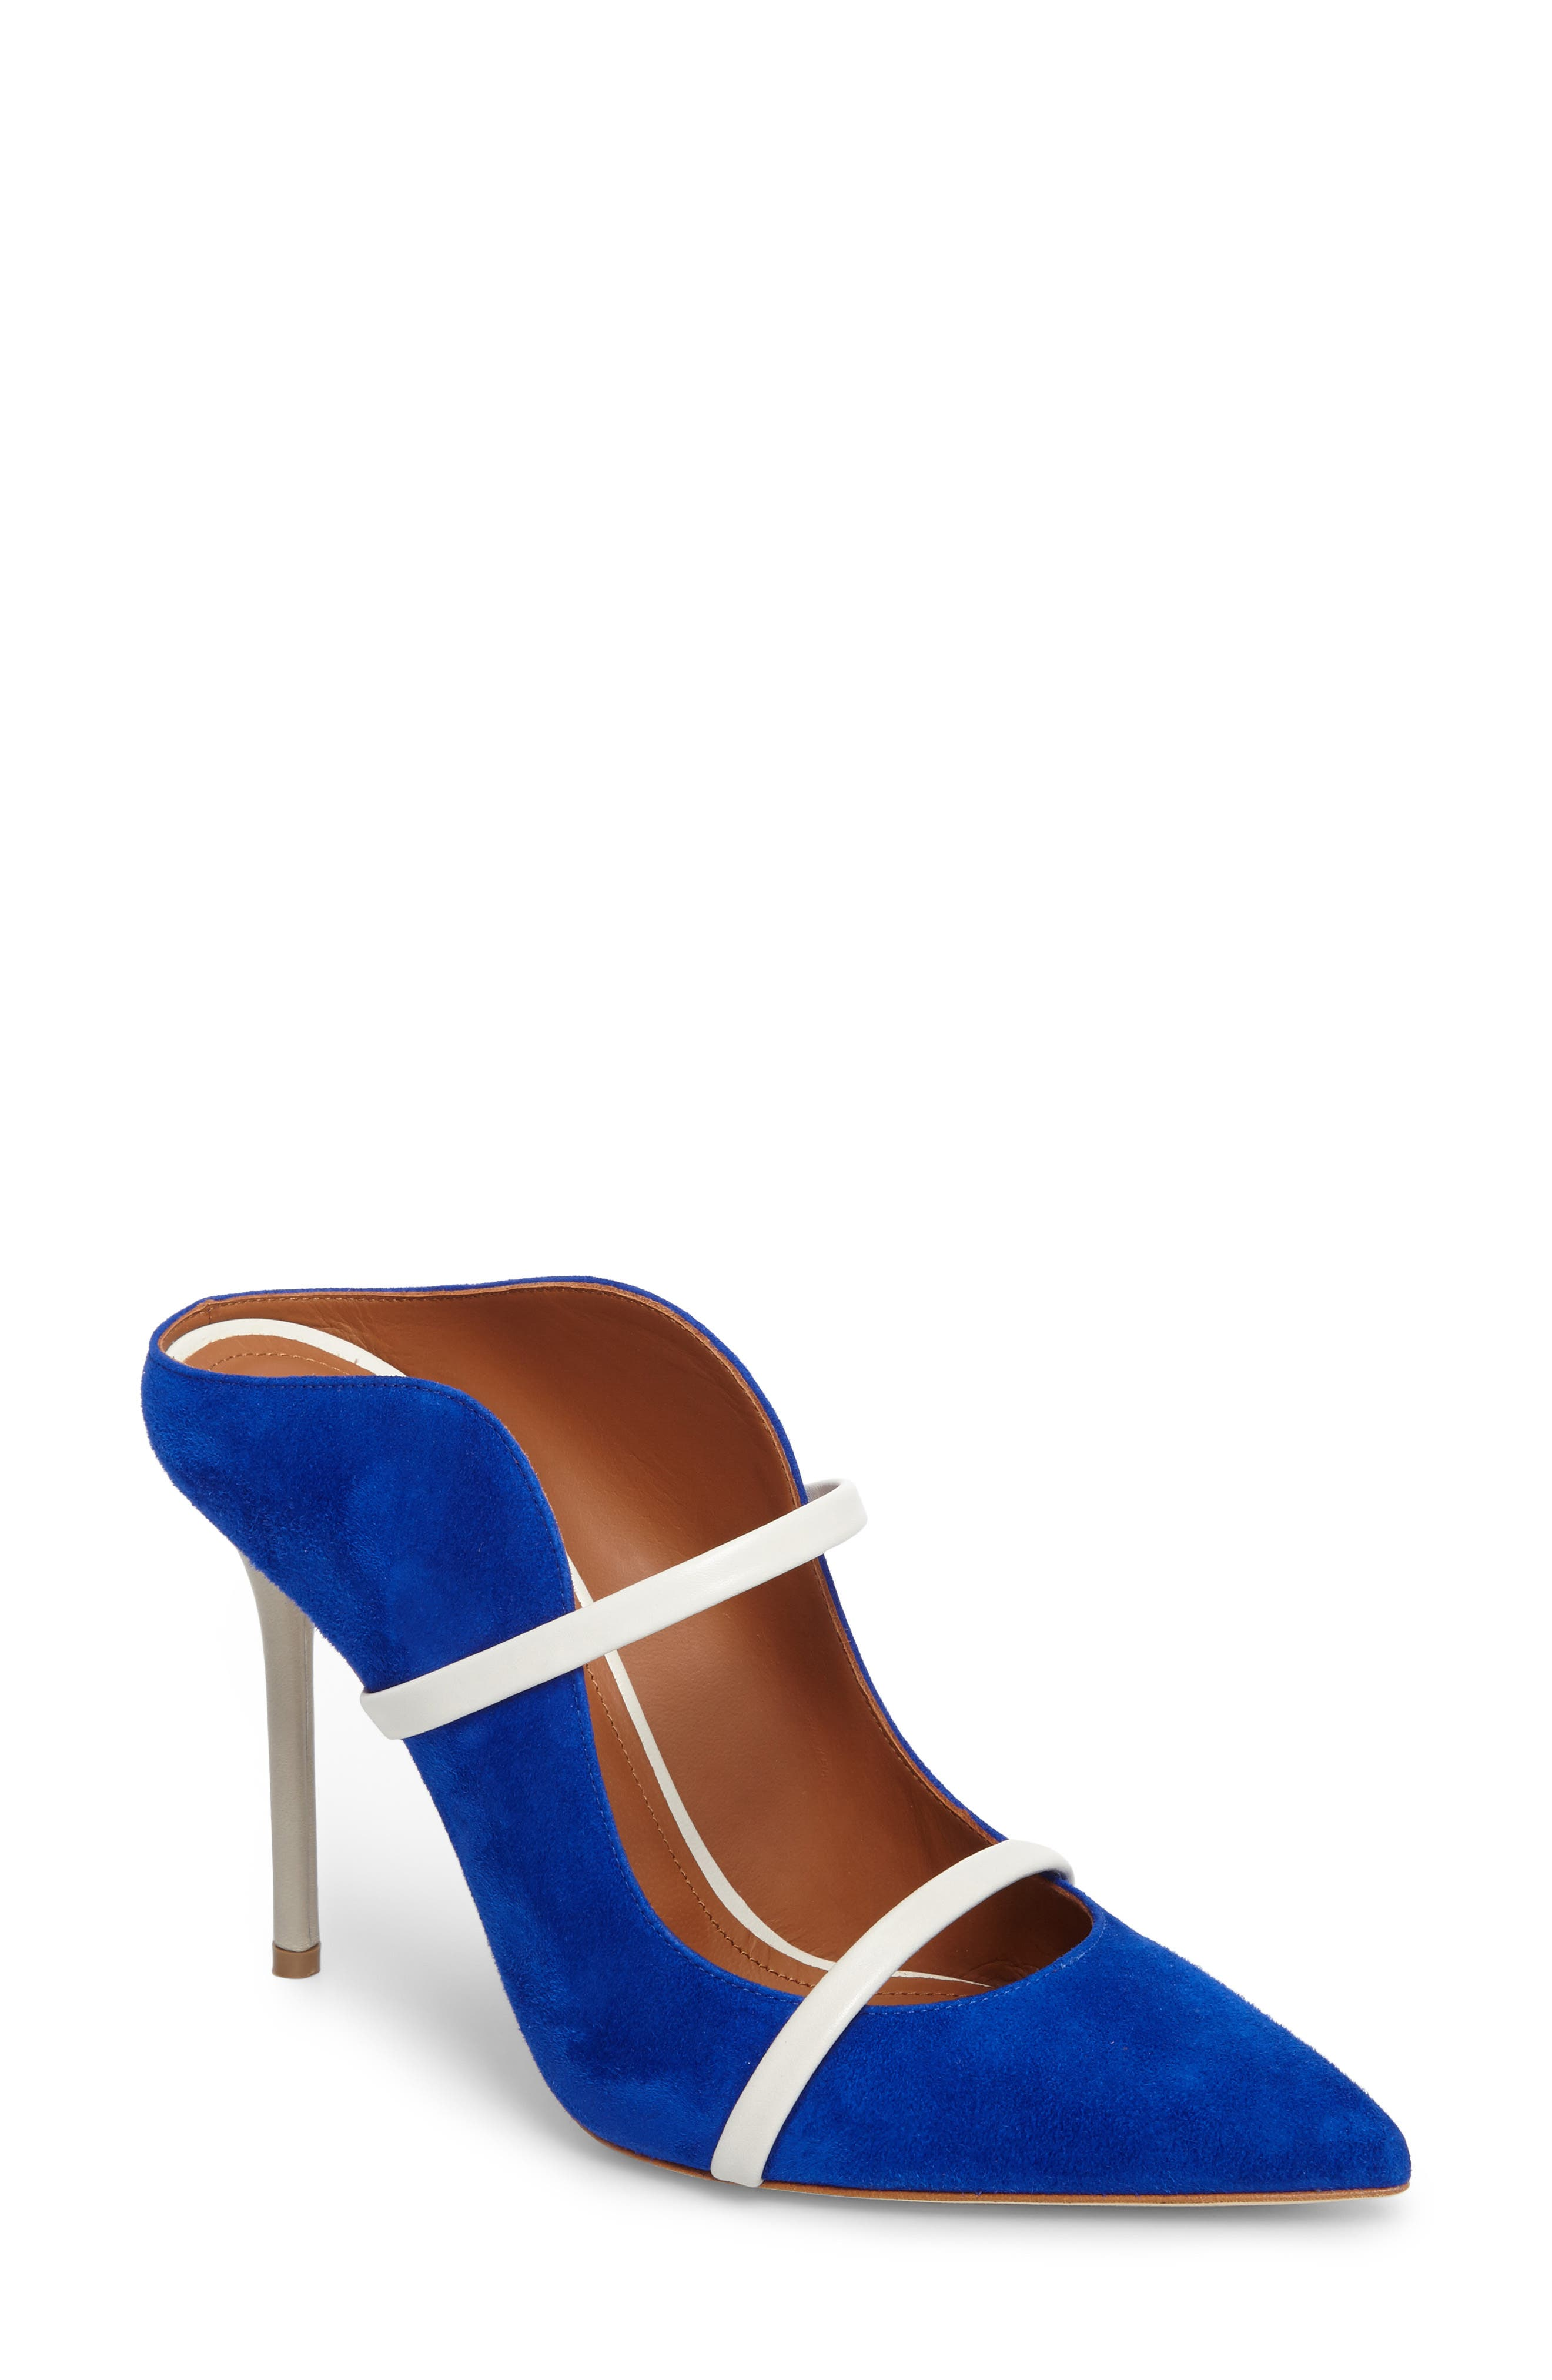 Maureen Double Band Mule,                         Main,                         color, Electric Blue/ Foam/ Grey